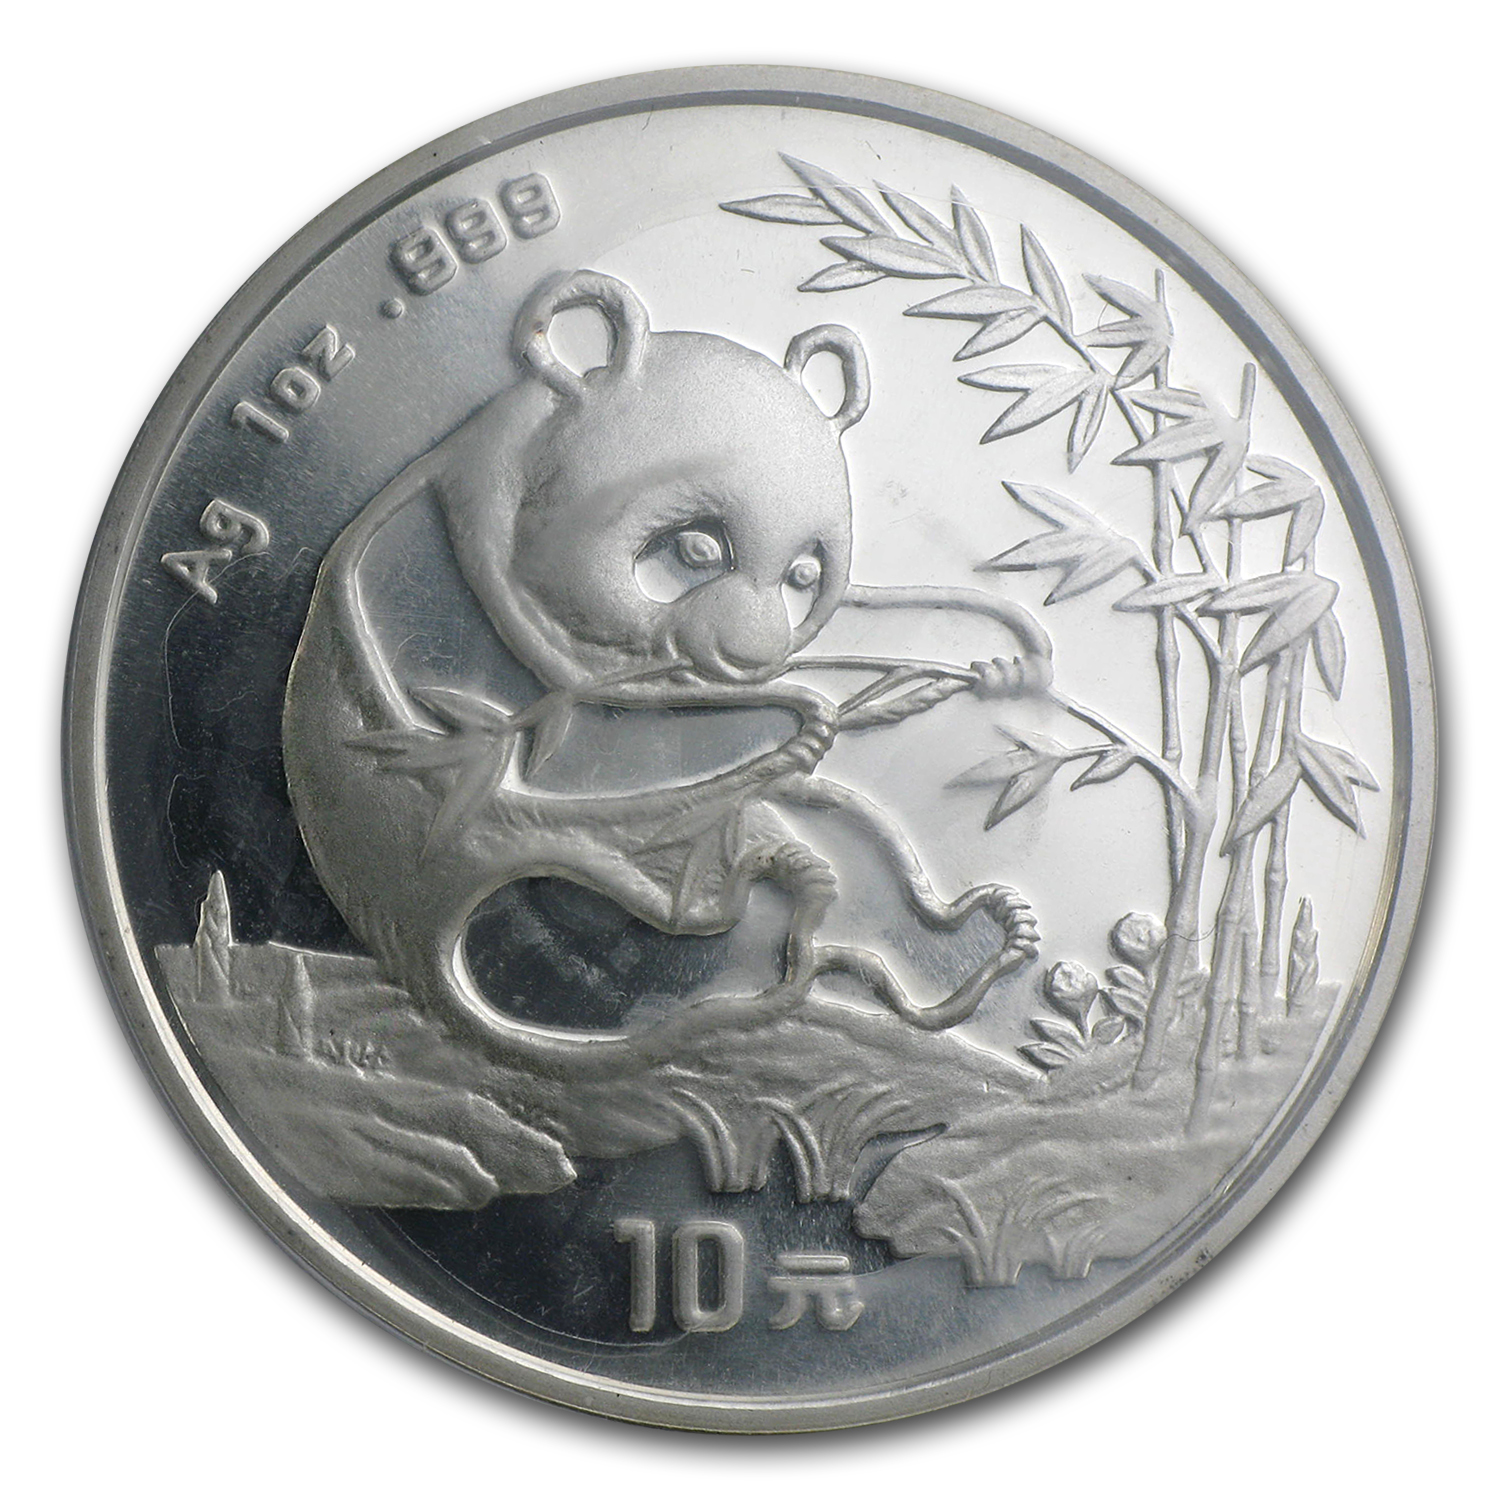 1994 China 1 oz Silver Panda Large Date BU (Sealed)